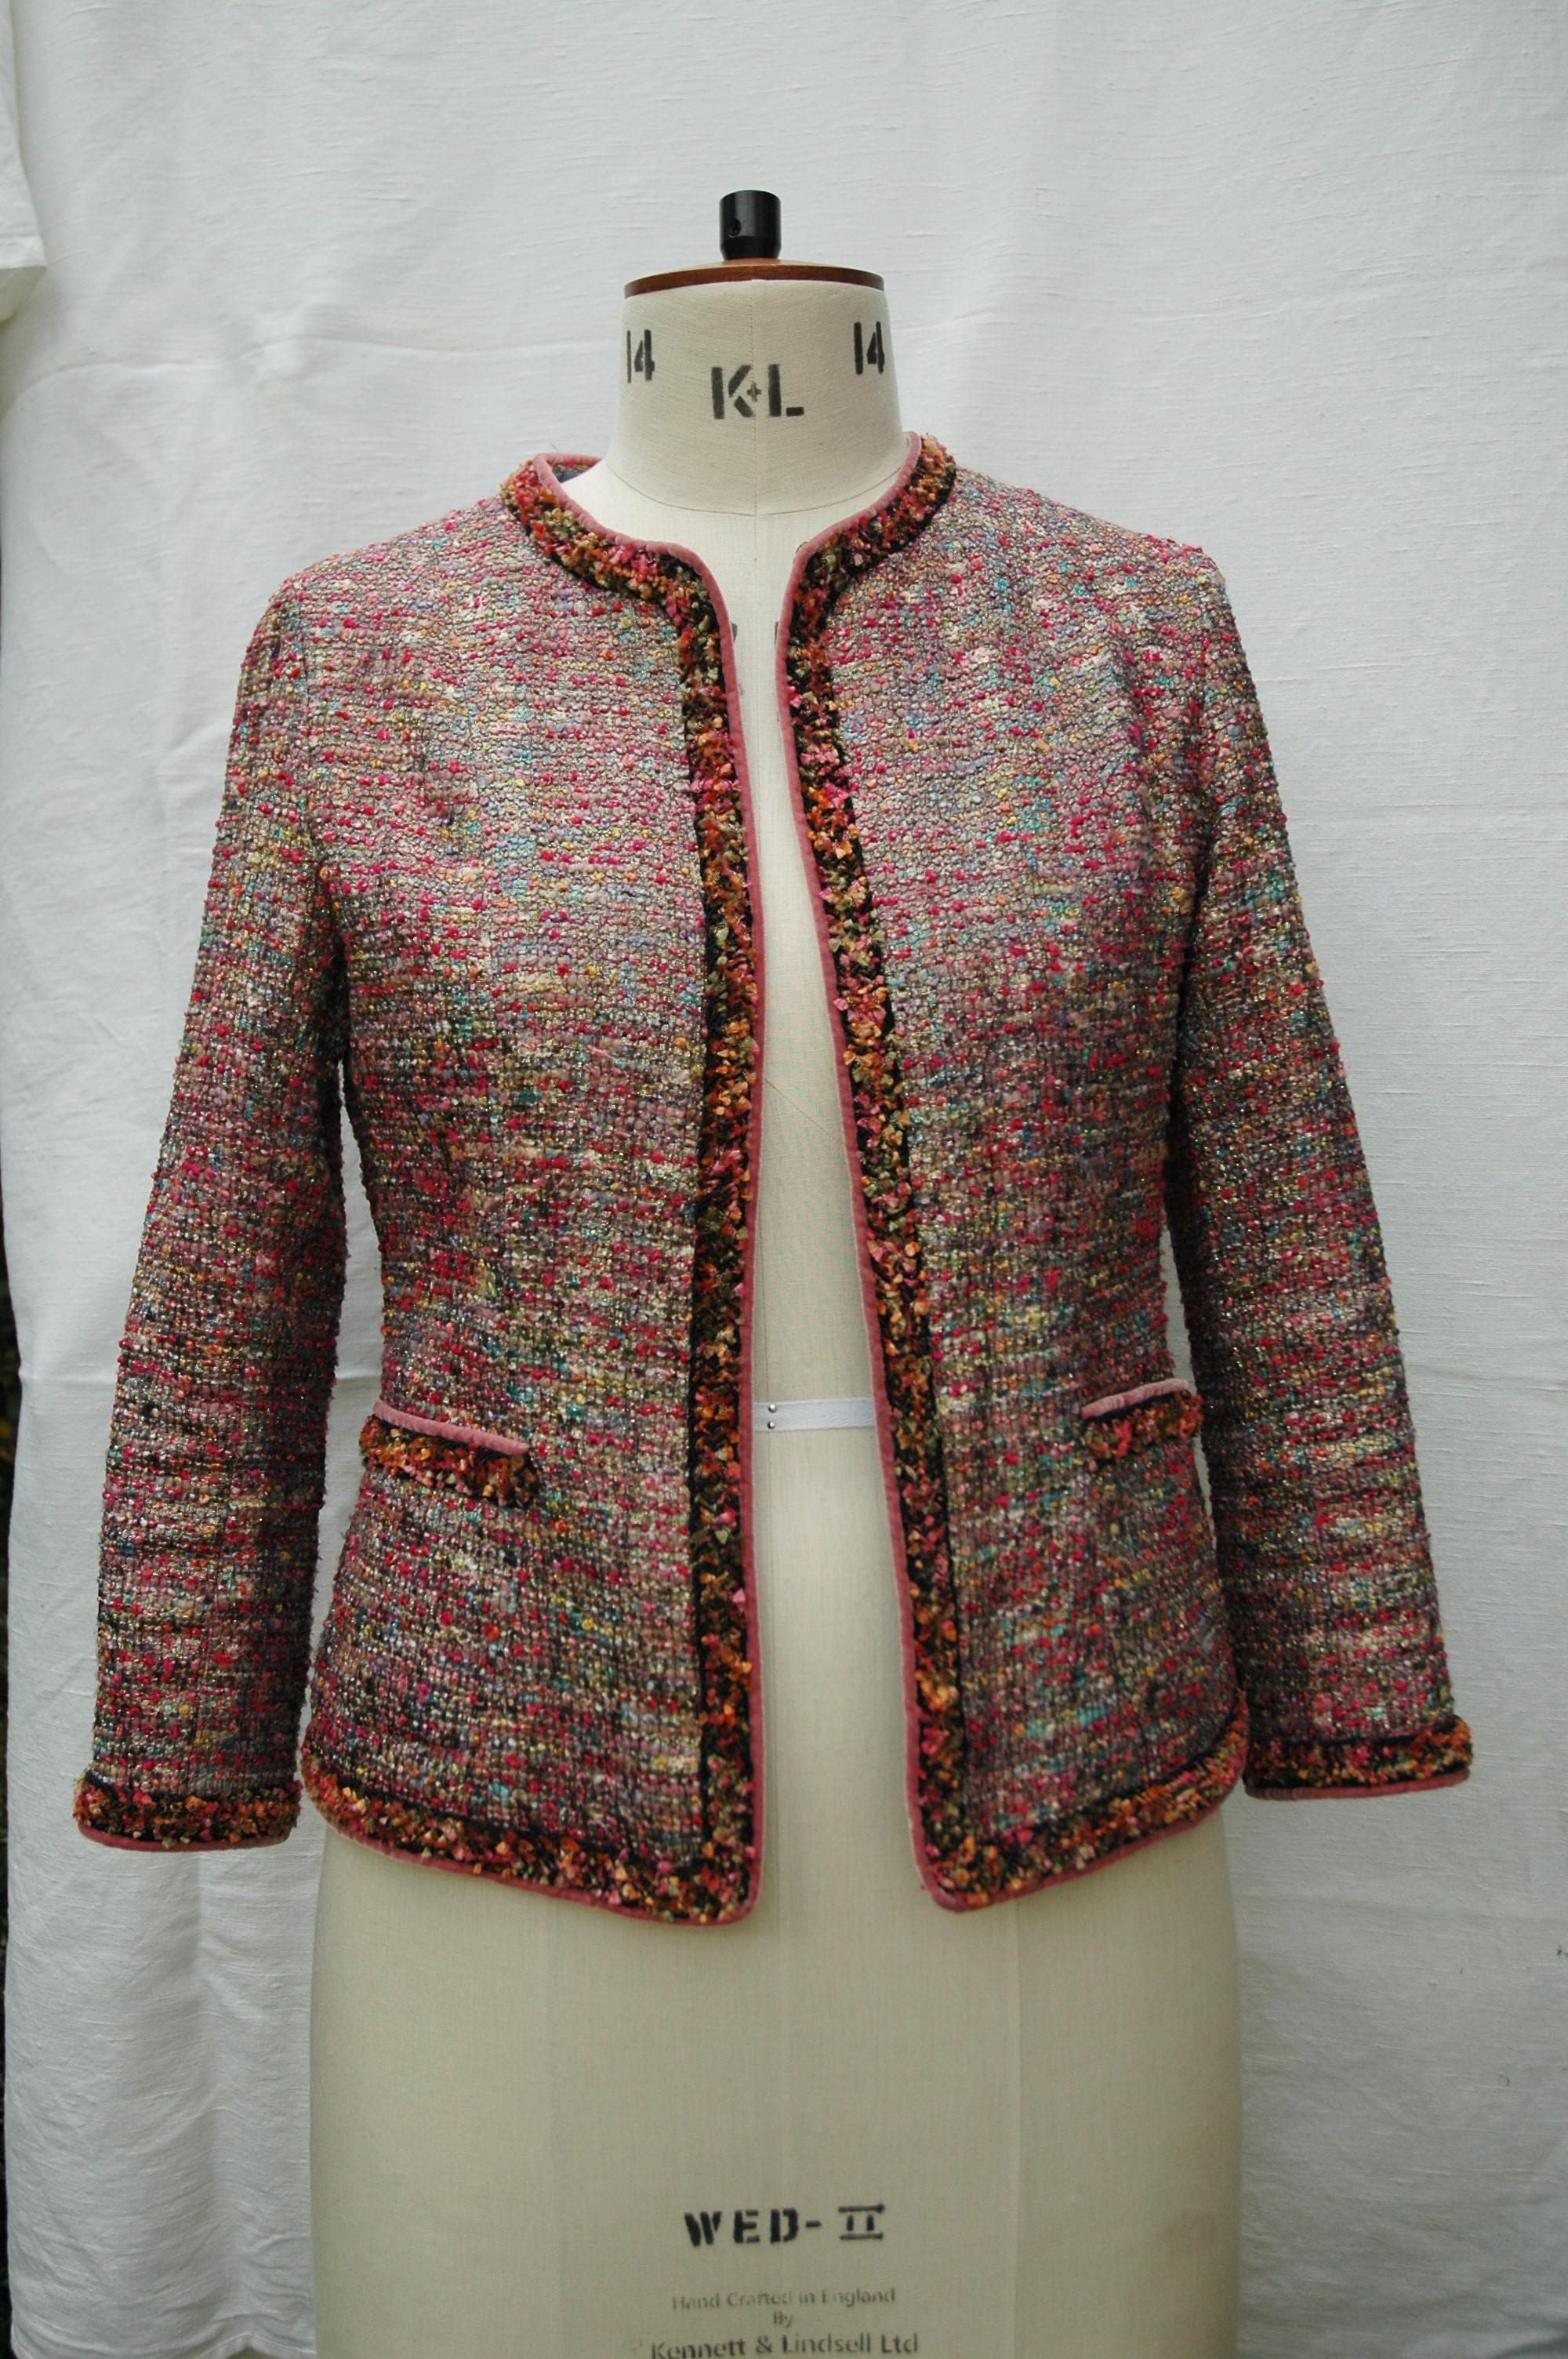 Chanel Style Boucle Jacket Sewing Projects Burdastyle Com